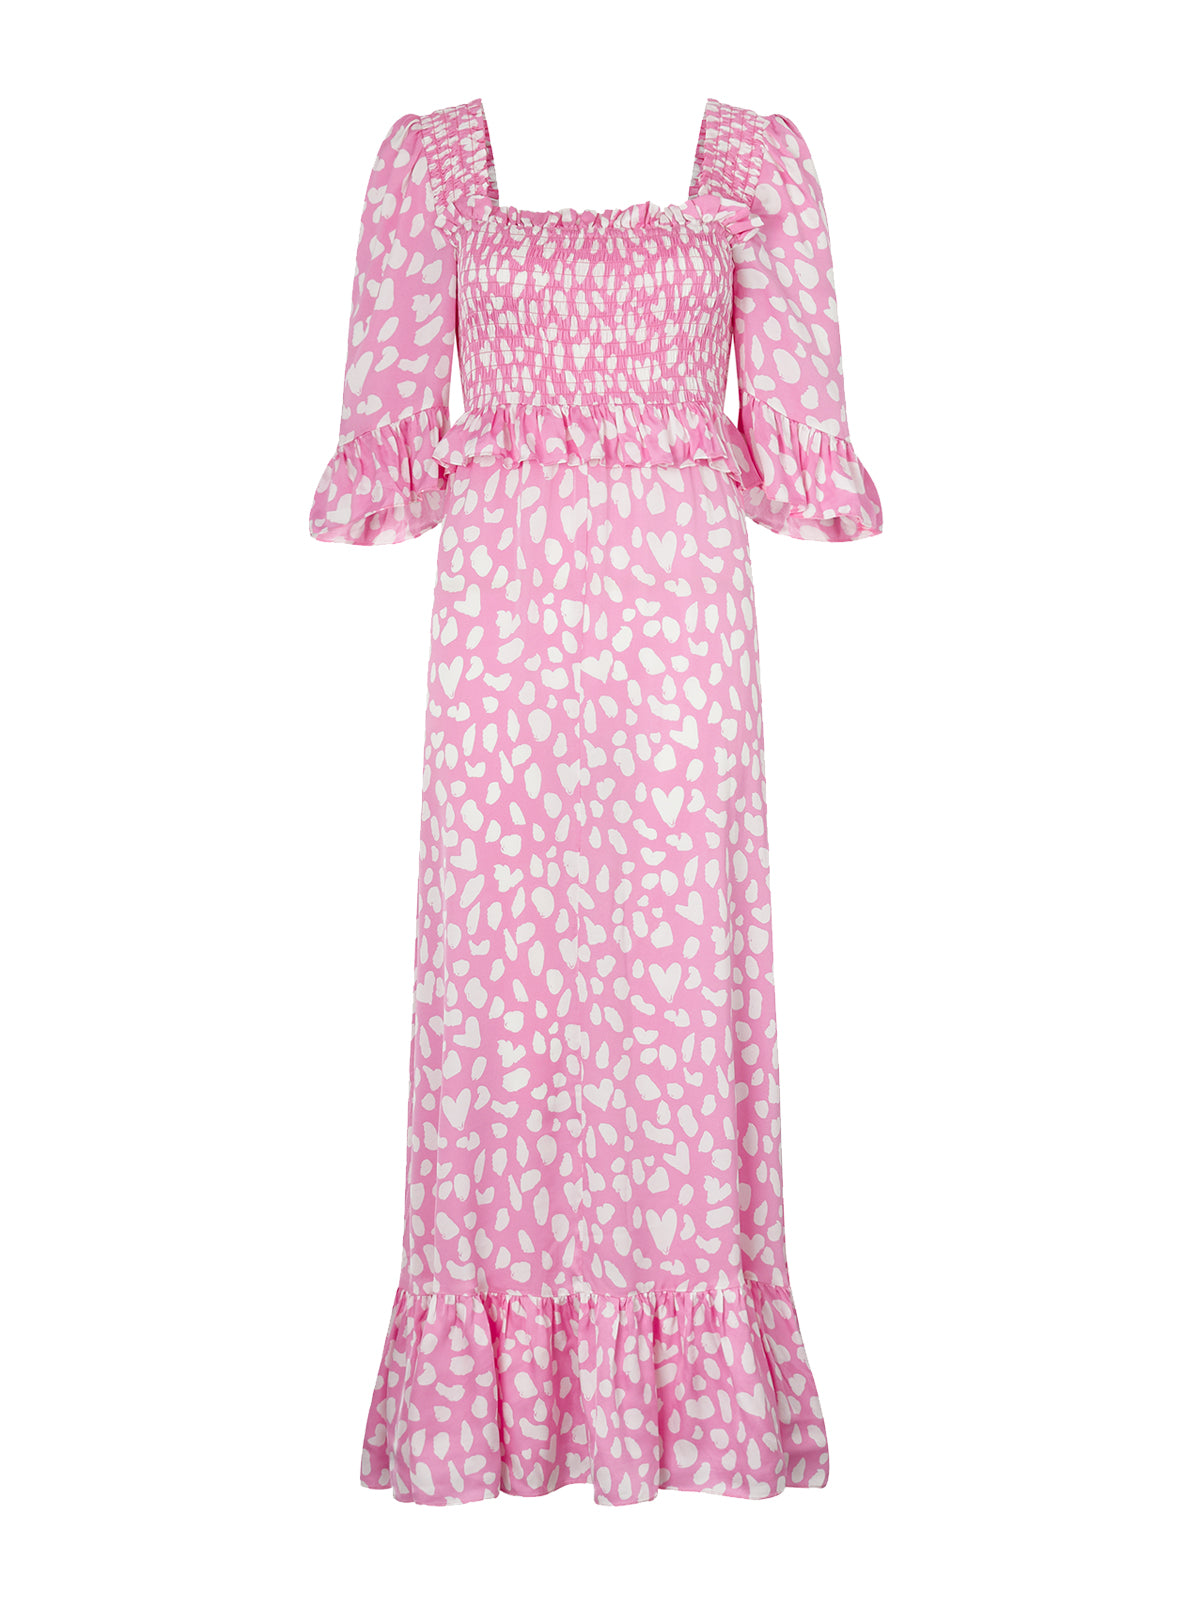 Ara Pink Animal Print Smocked Dress